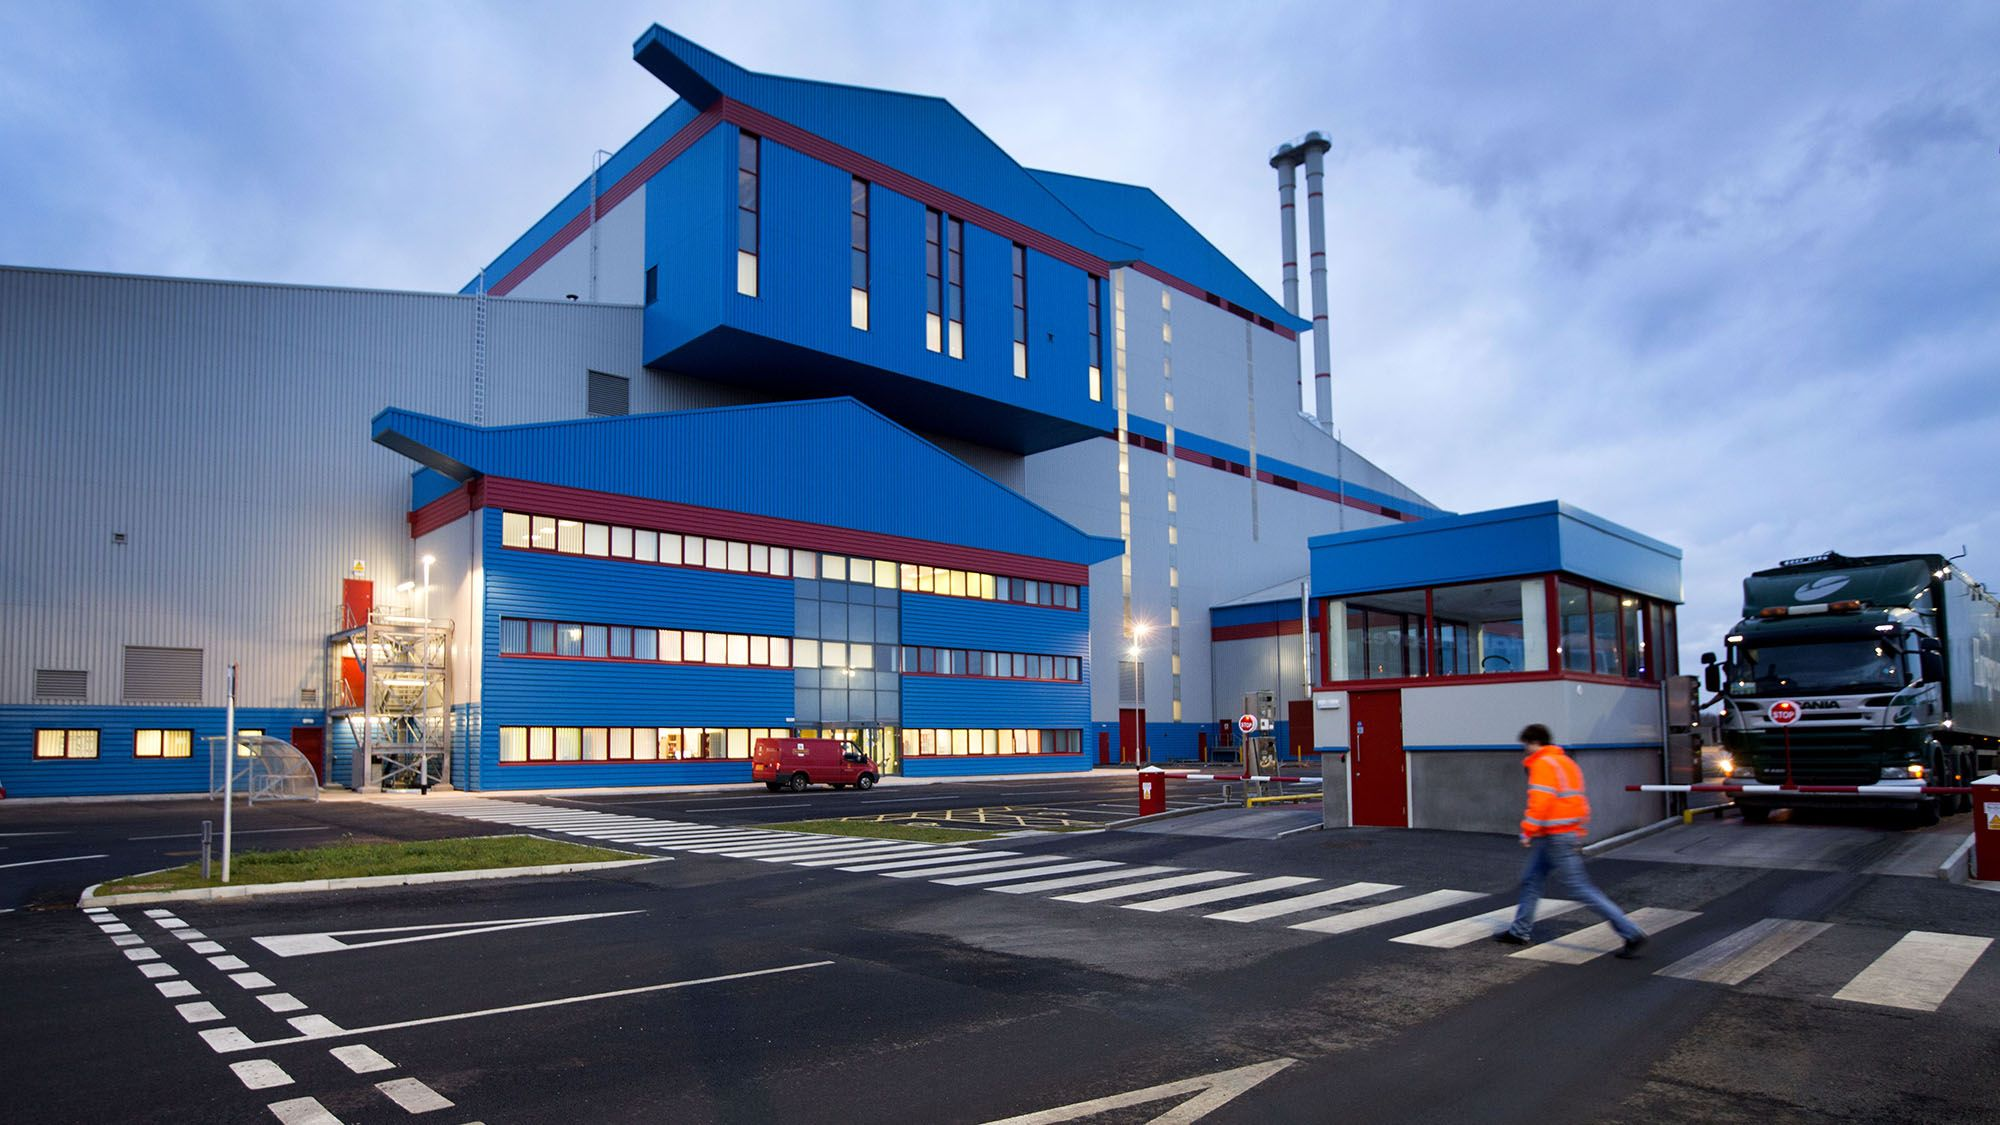 Teesside energy from waste facility